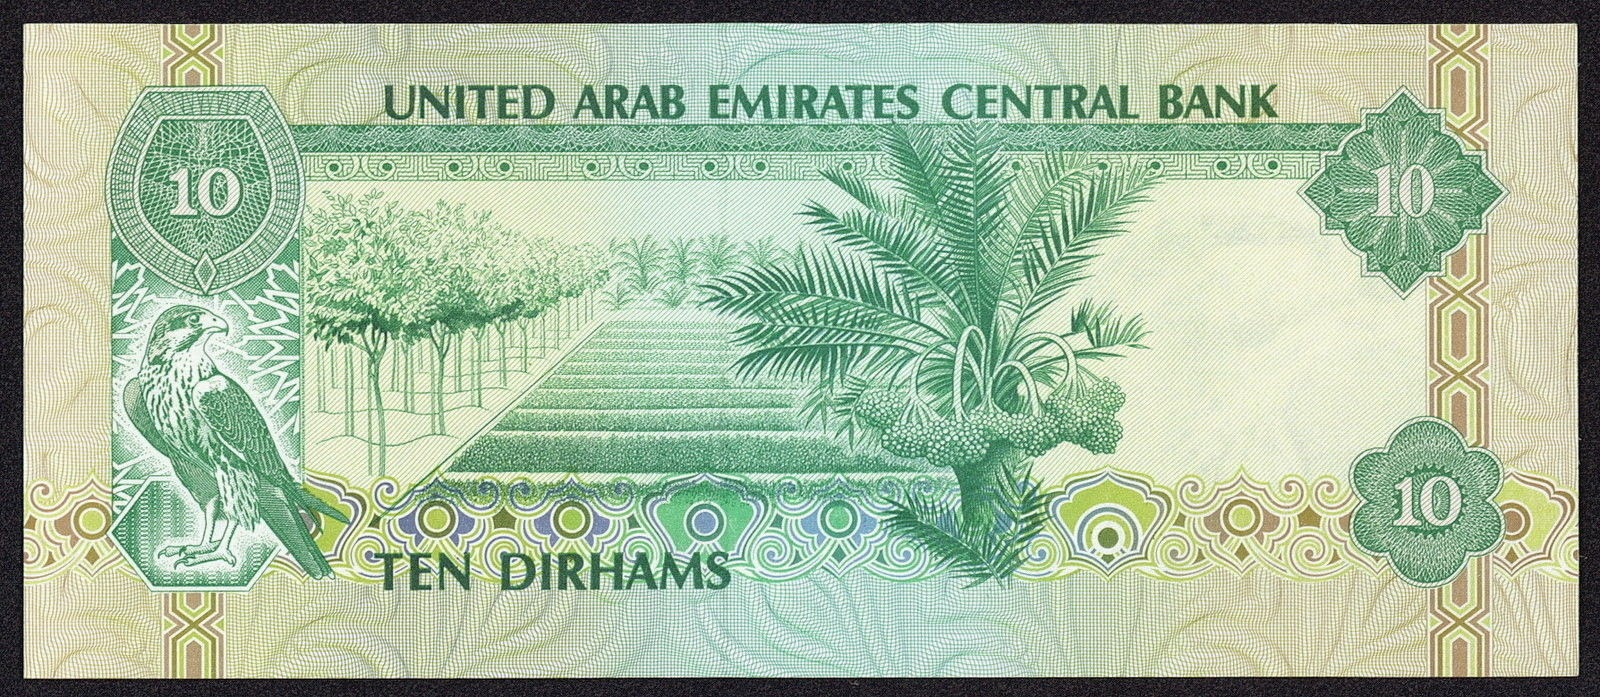 United Arab Emirates Currency 10 Dirhams banknote 1982